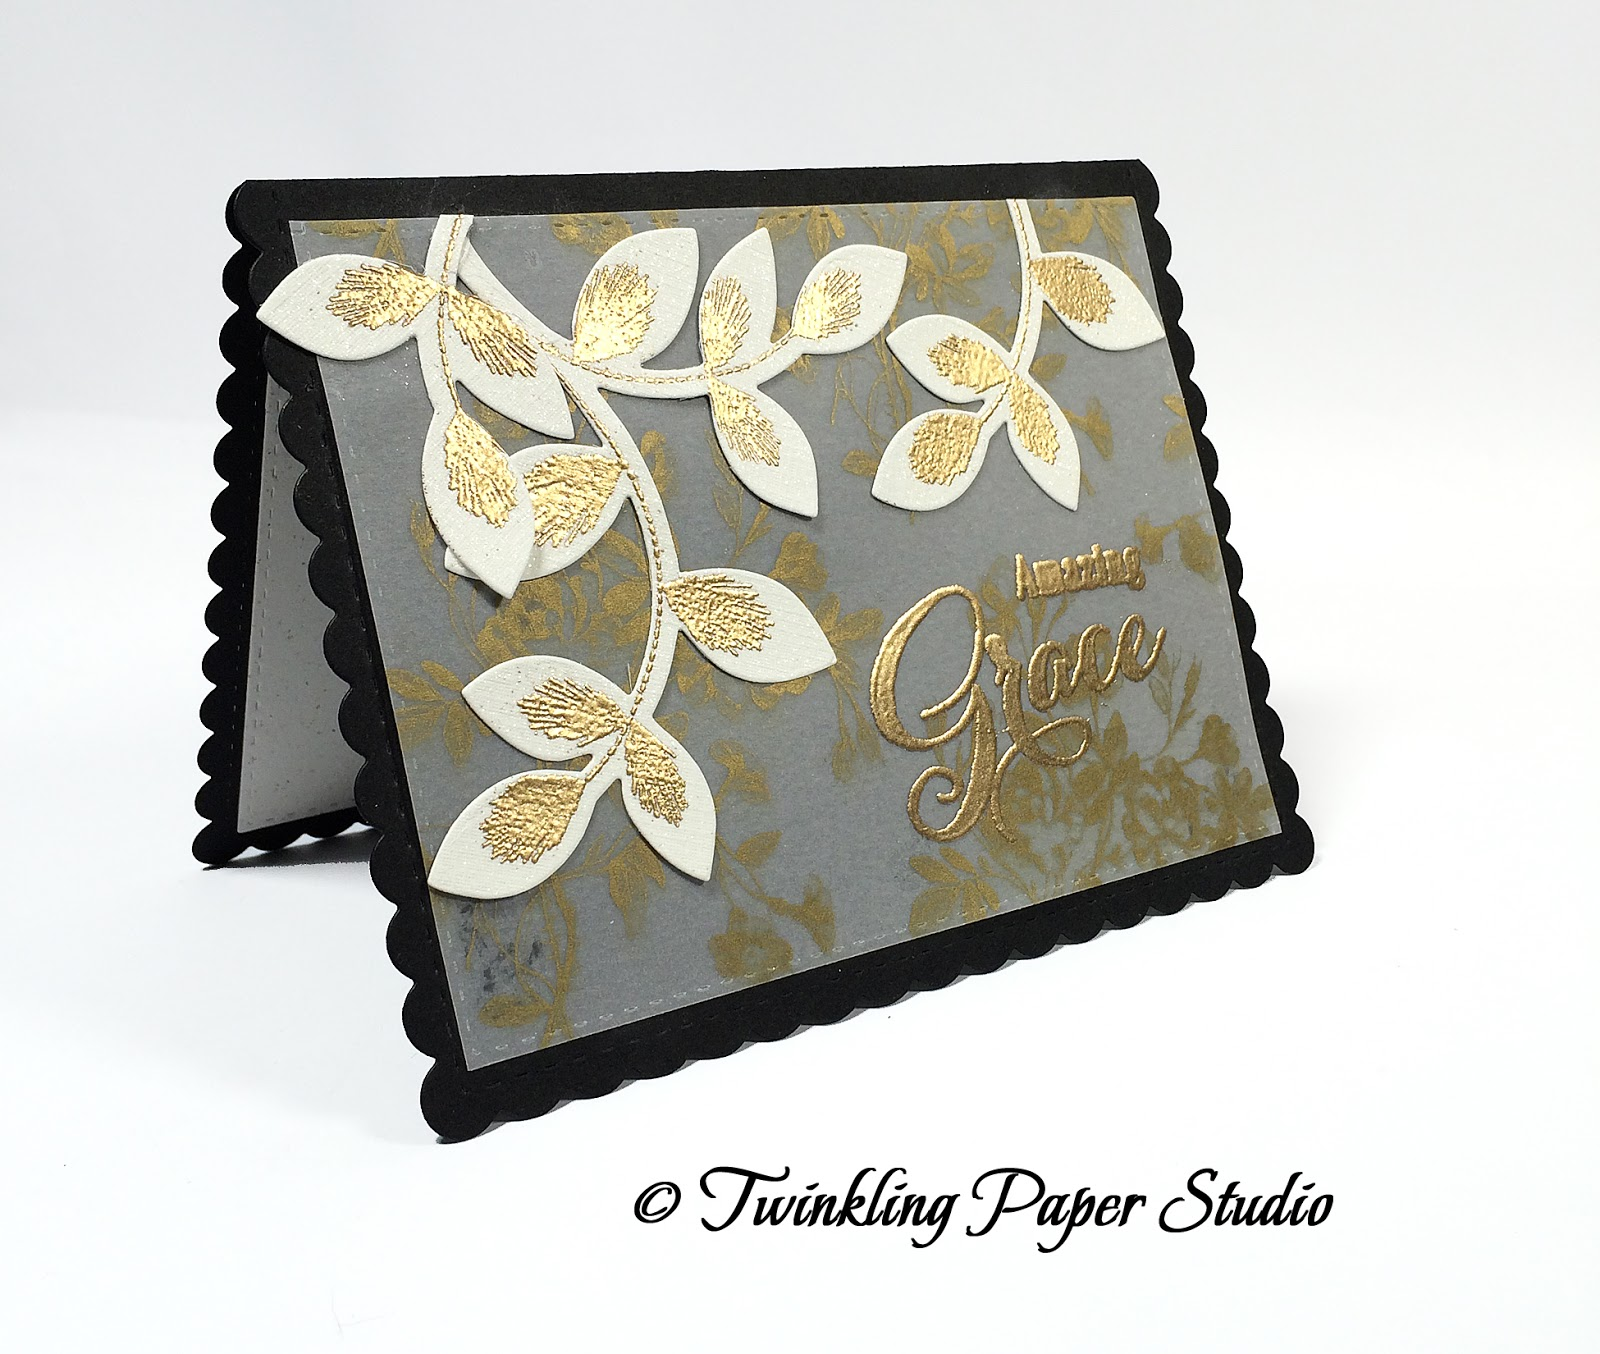 Cream colored cardstock paper studio - I Started By Cutting A Card Base From True Black Cardstock Using The Noted Scalloped A2 Dies I Wanted To Keep The Look Ultra Chic And Elegant So I Looked